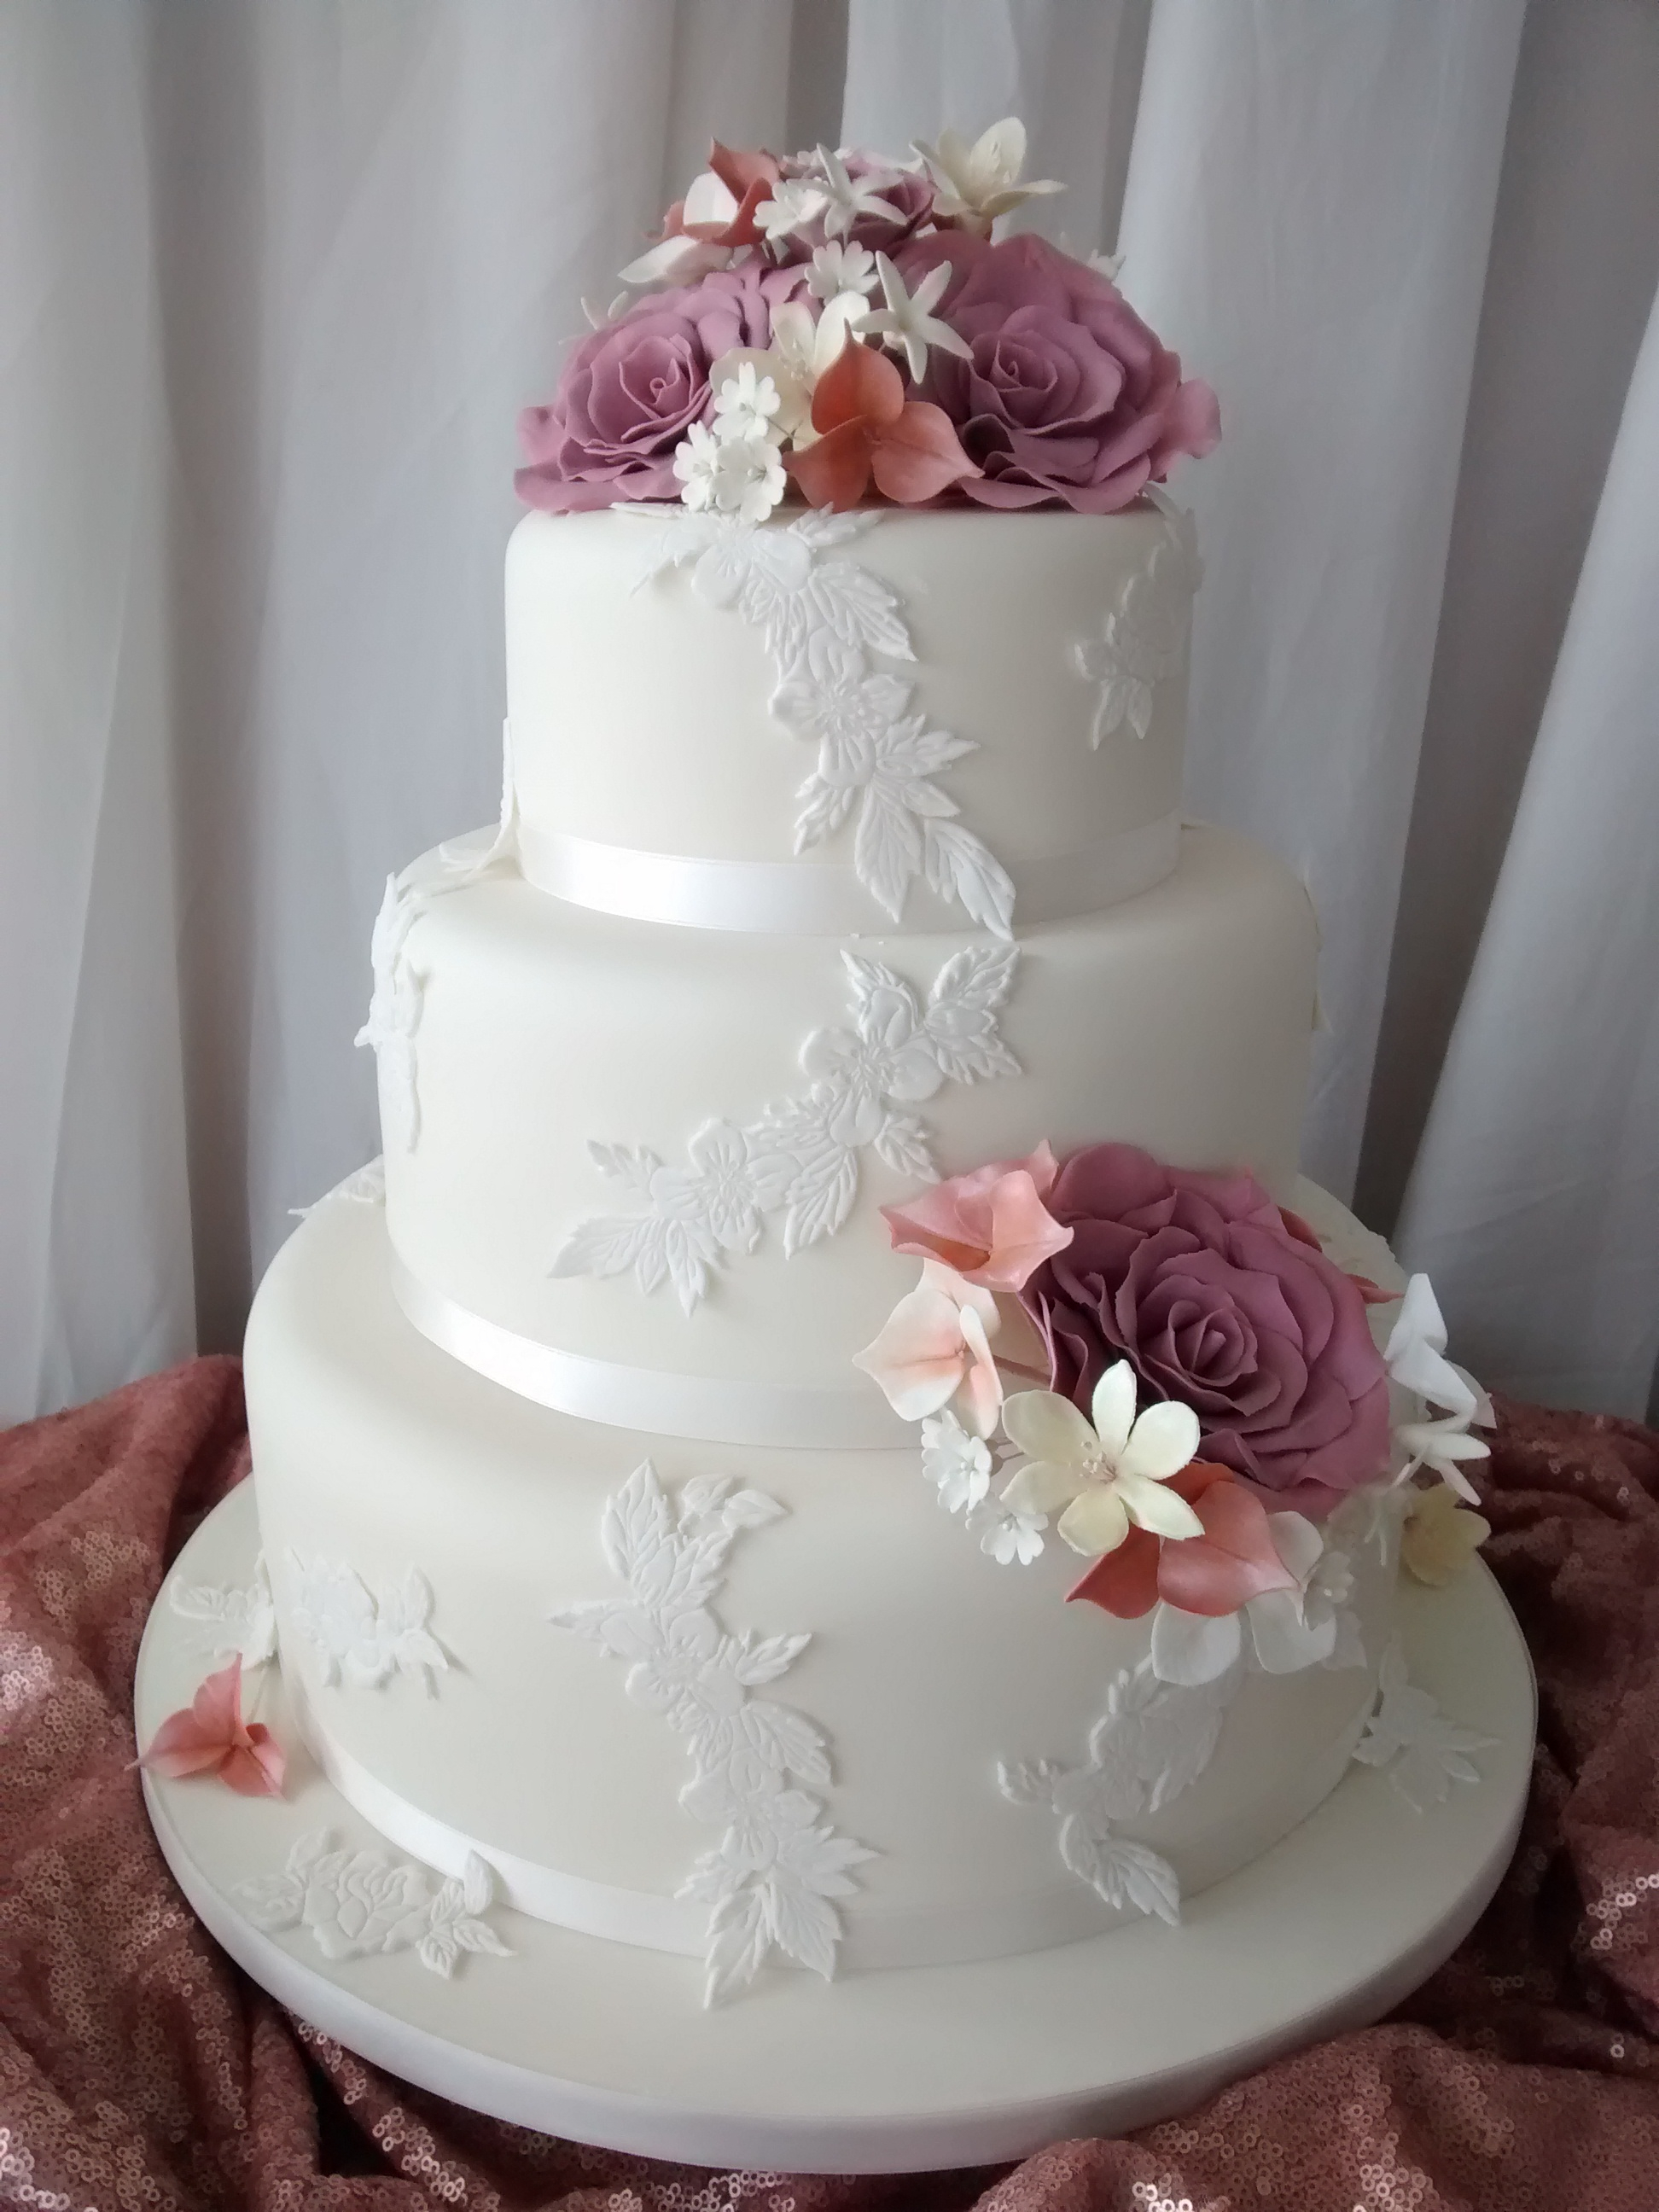 Wedding Cakes South Wales Wedding Cake Designer Bridgend